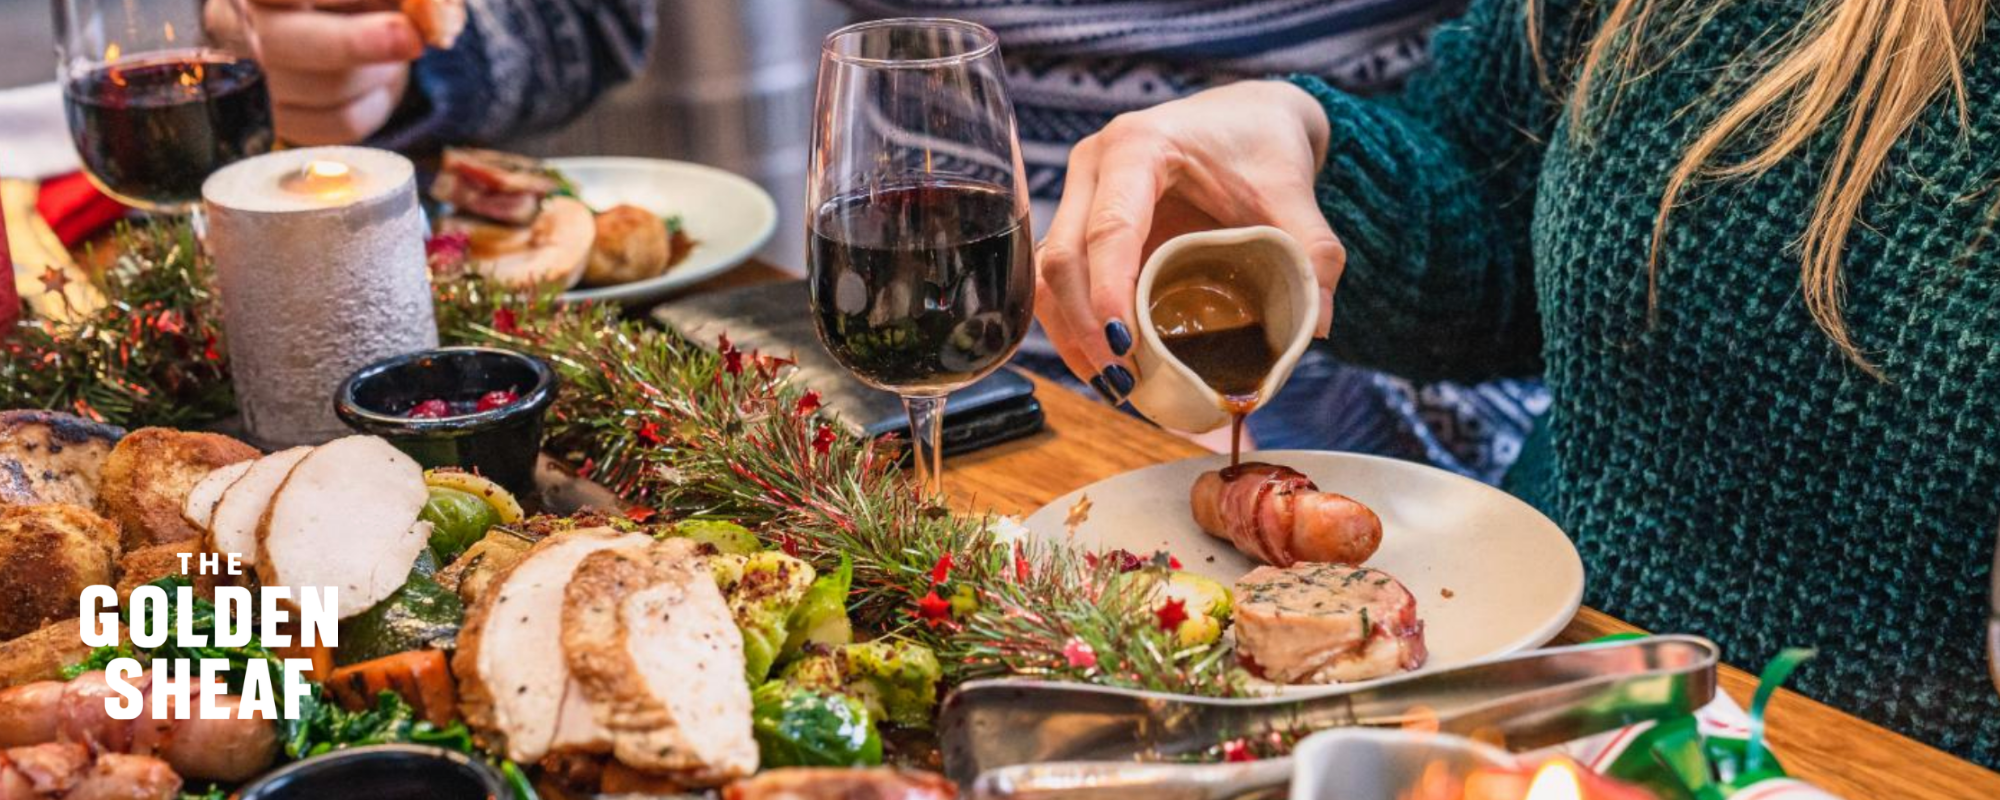 Table filled with Christmas decorations, red wine and a roast dinner feast